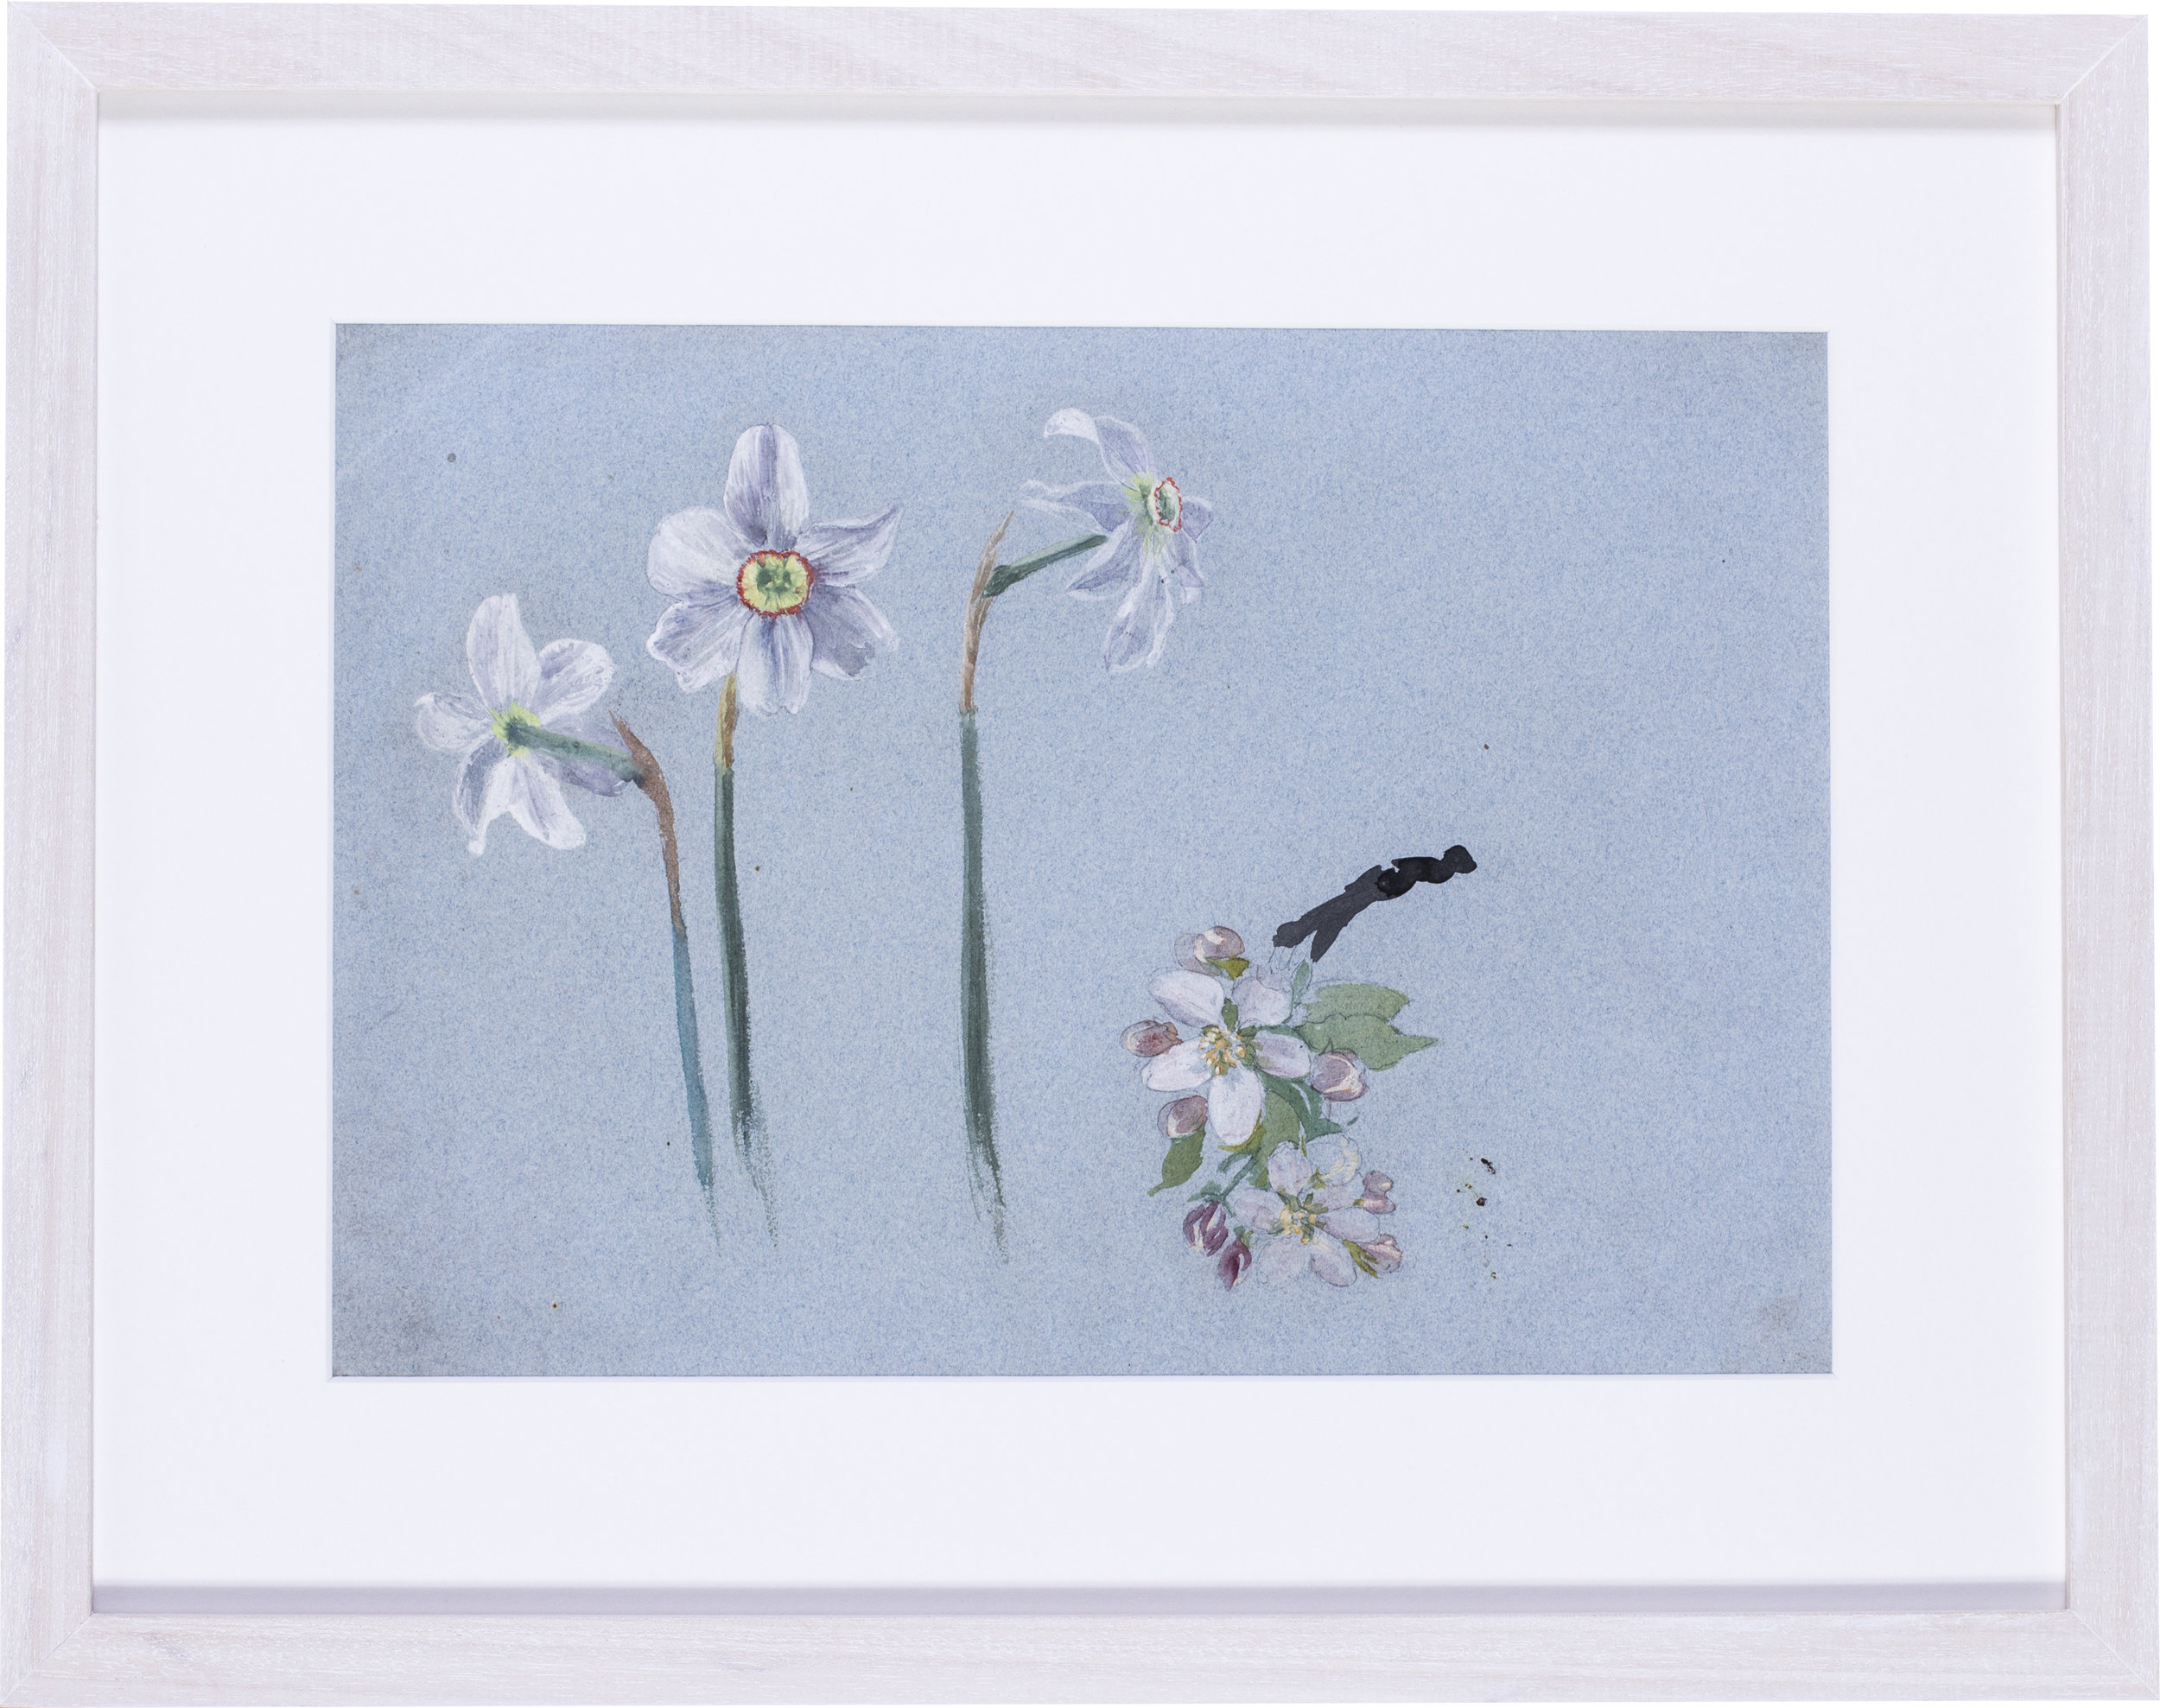 Narcissi and apple blossom   Watercolour heightened with white on blue paper  9.5/8 x 13.3/4 in. (24.5 x 35 cm.)  SOLD